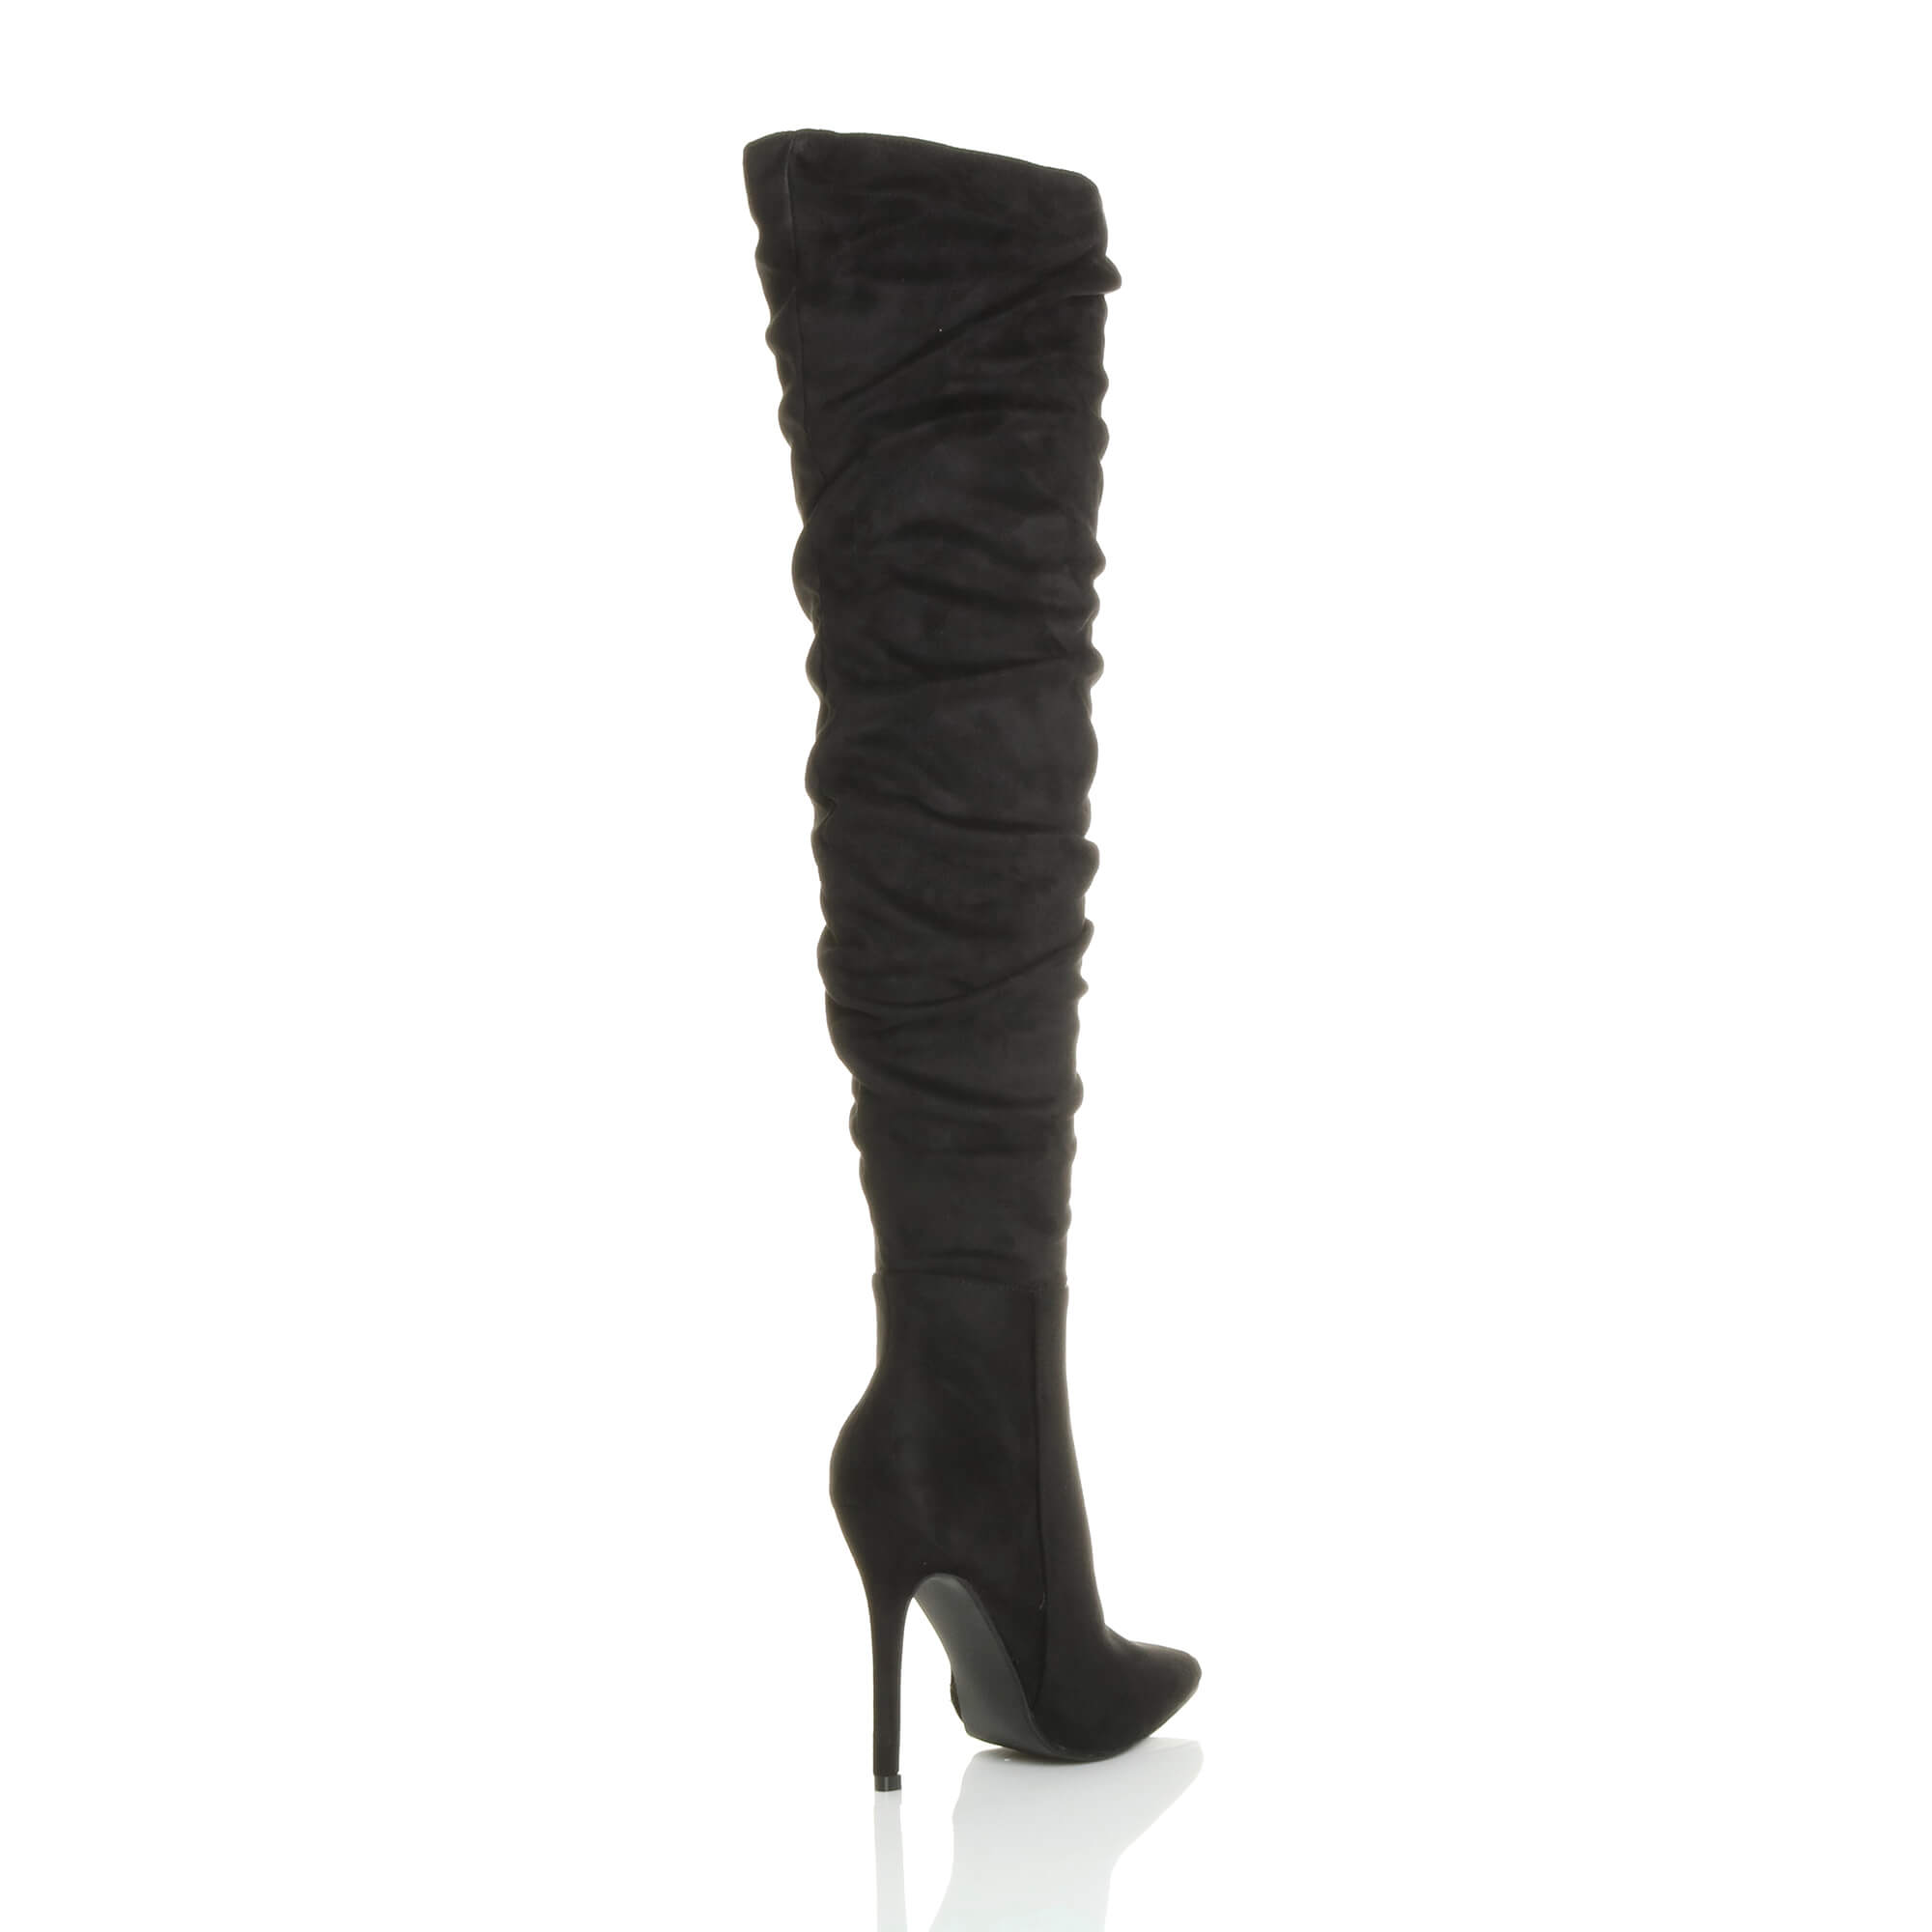 WOMENS-LADIES-HIGH-HEEL-RUCHED-SLOUCH-OVER-THE-KNEE-POINTED-THIGH-BOOTS-SIZE